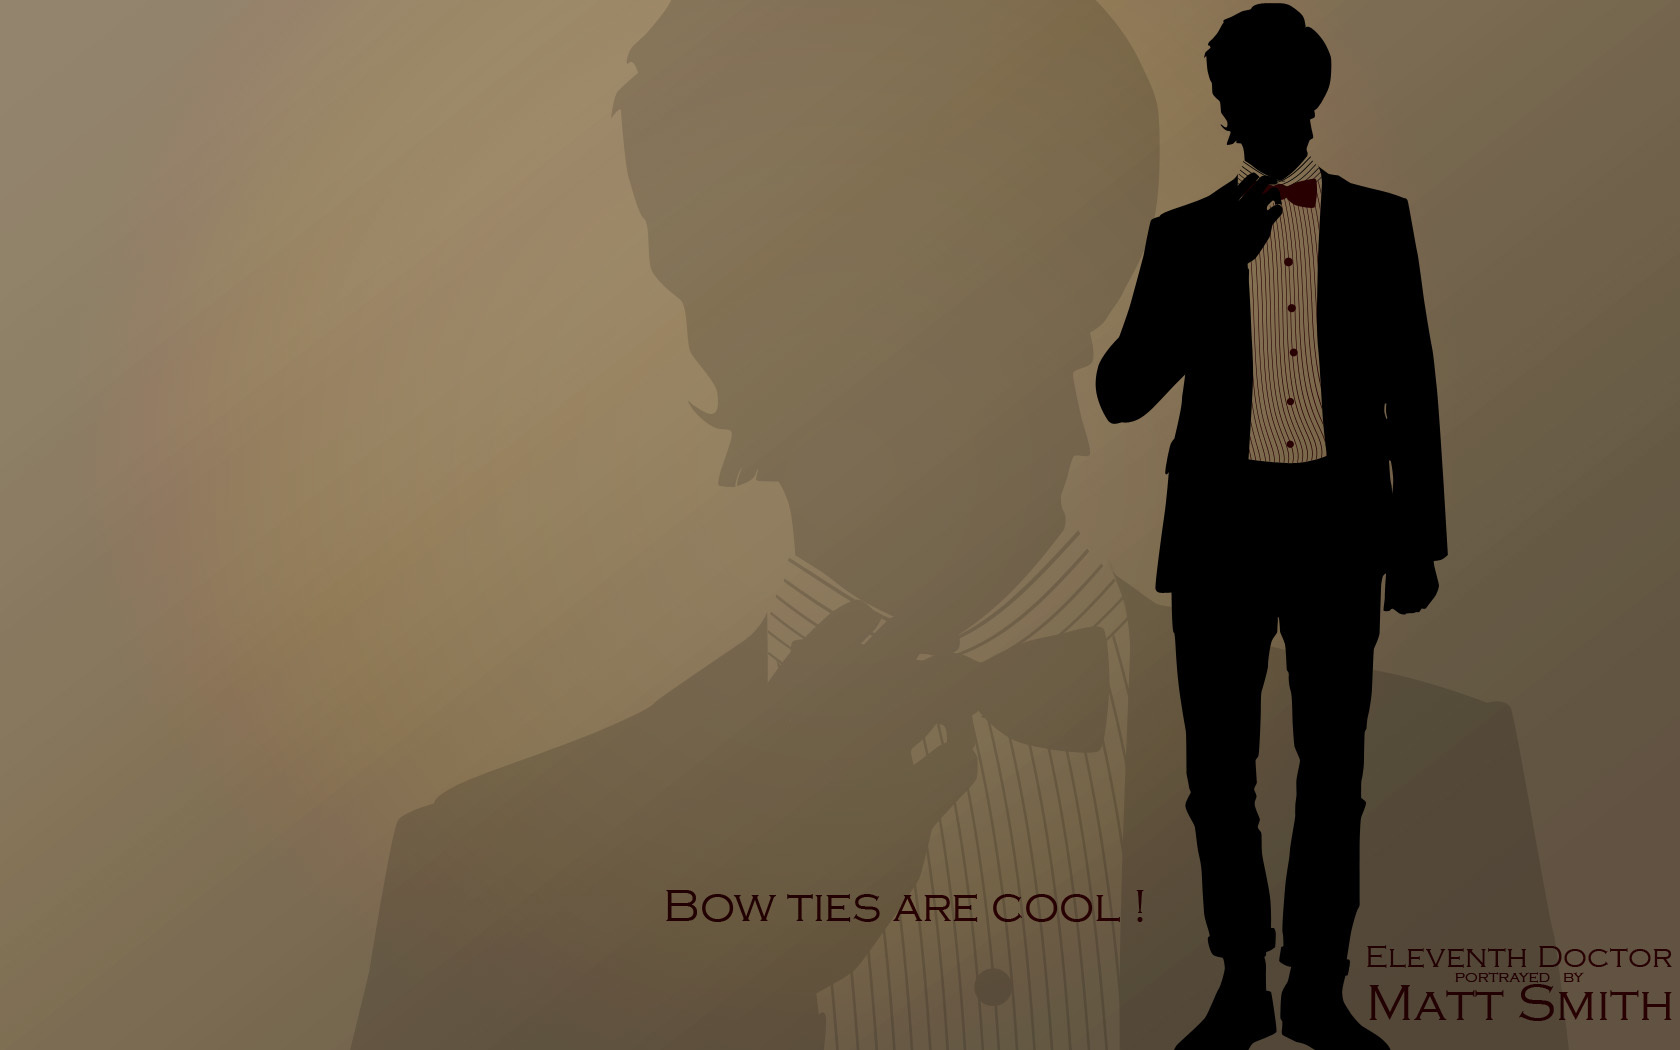 bow ties by tibots HD Wallpaper